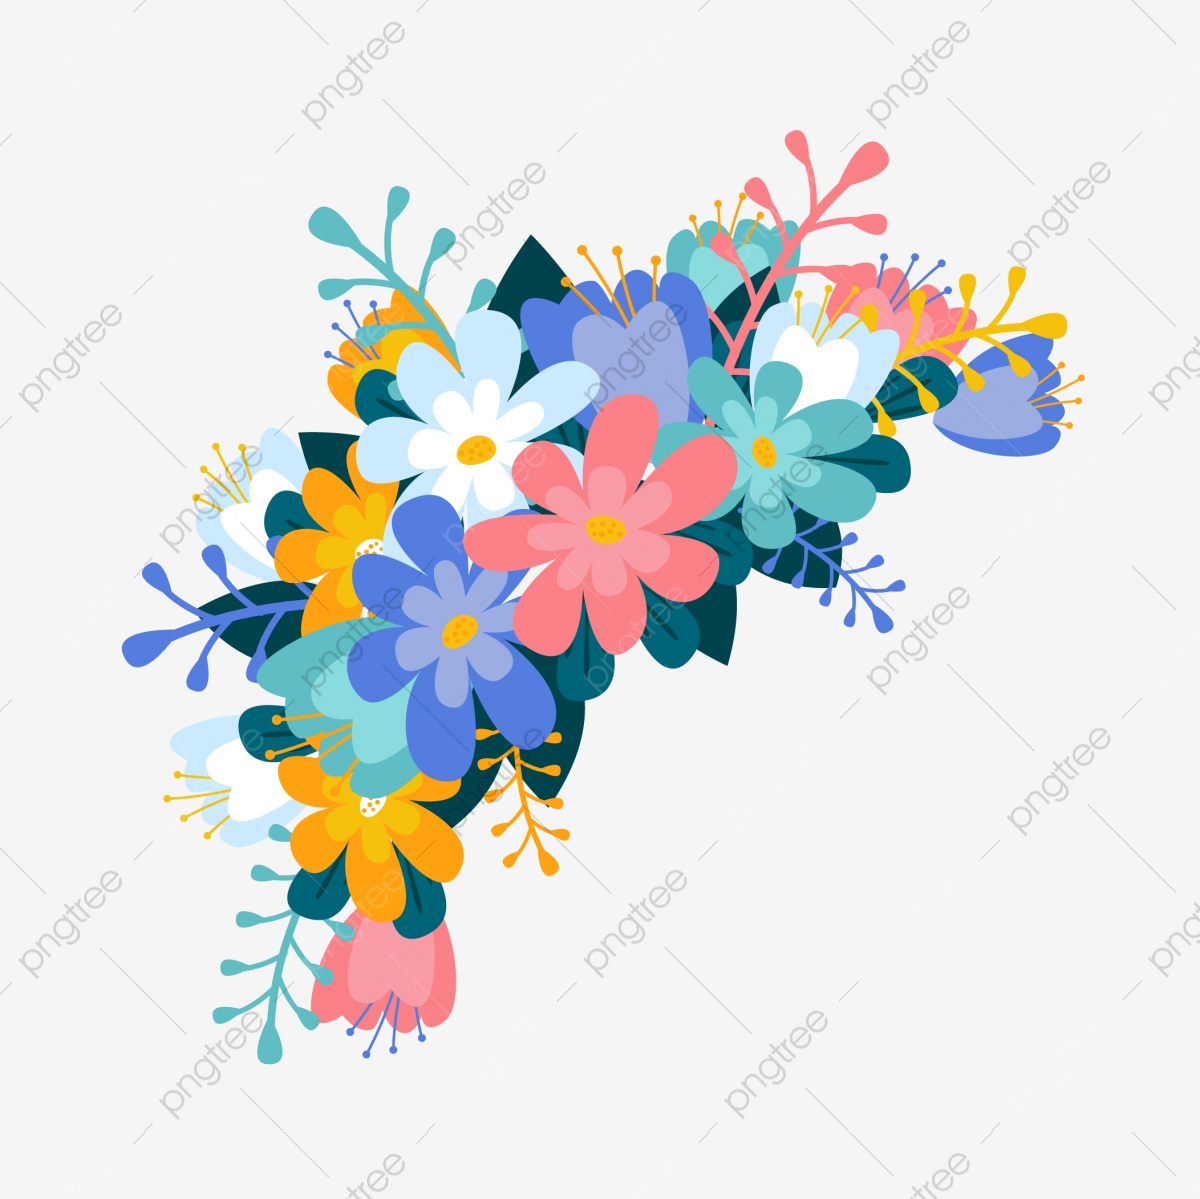 Romantic Romantic Flower Flower Flower Decoration Decorative Flower Decoration Vector Wildflower Png And Vector With Transparent Background For Free Download